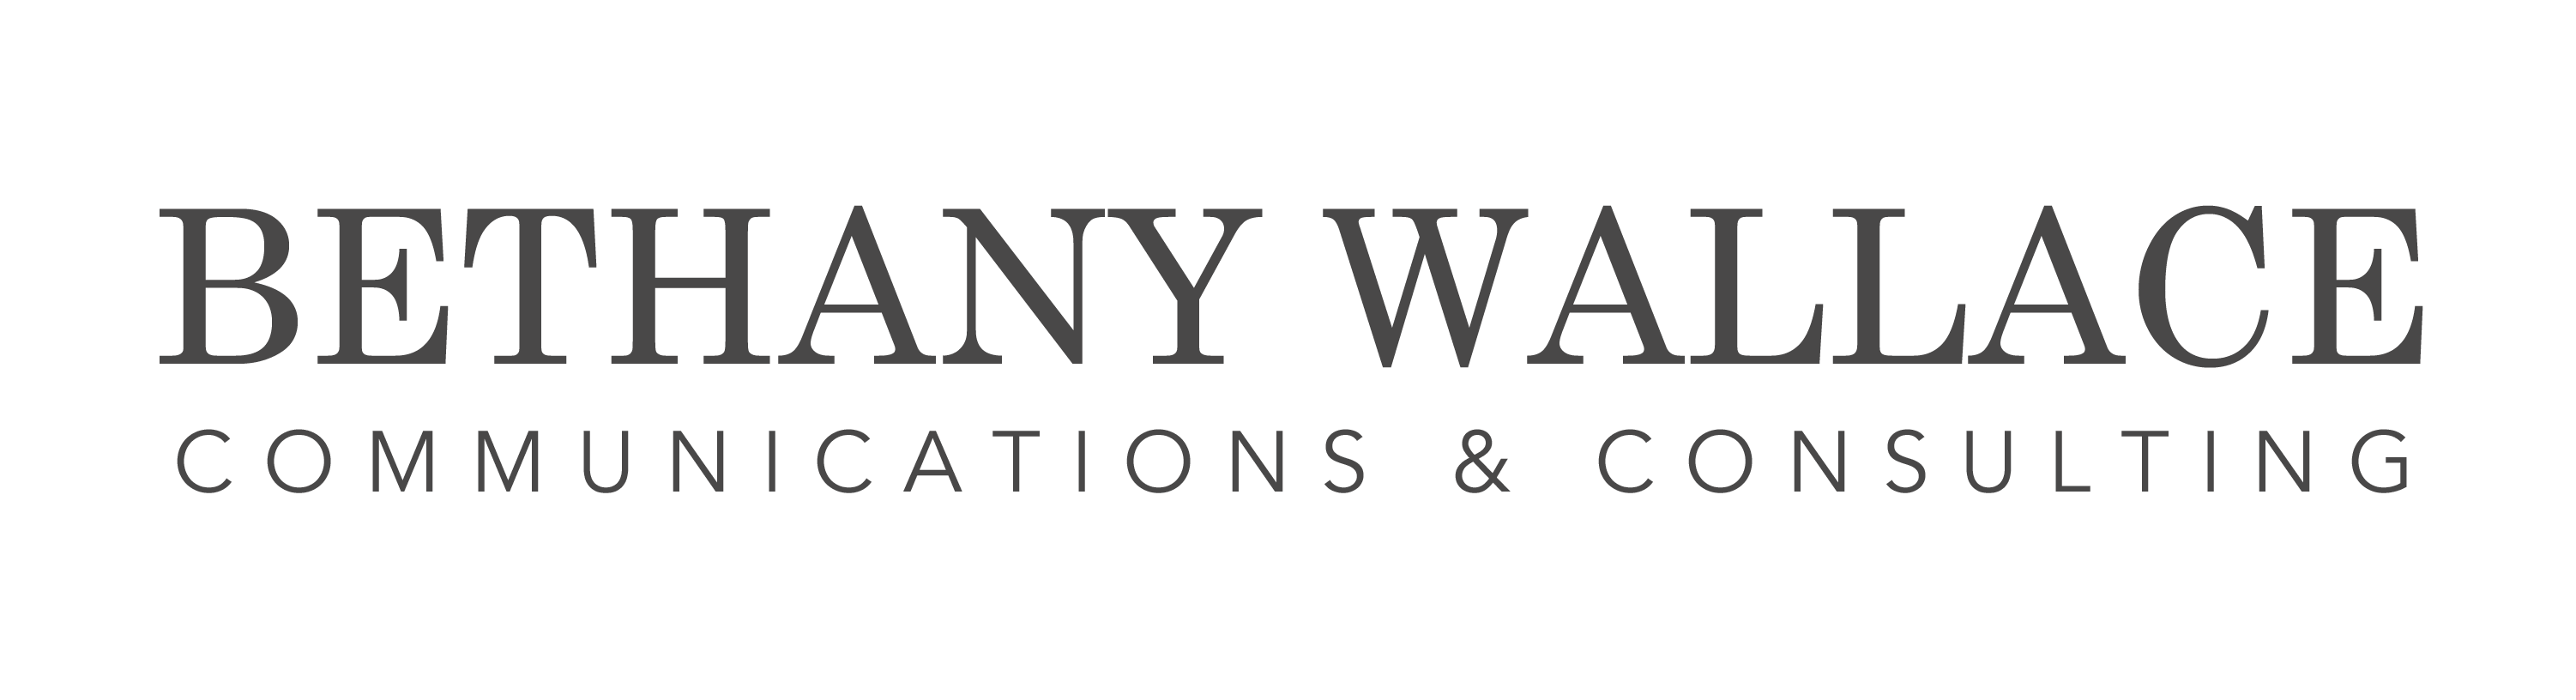 Bethany Wallace Communications and Consulting